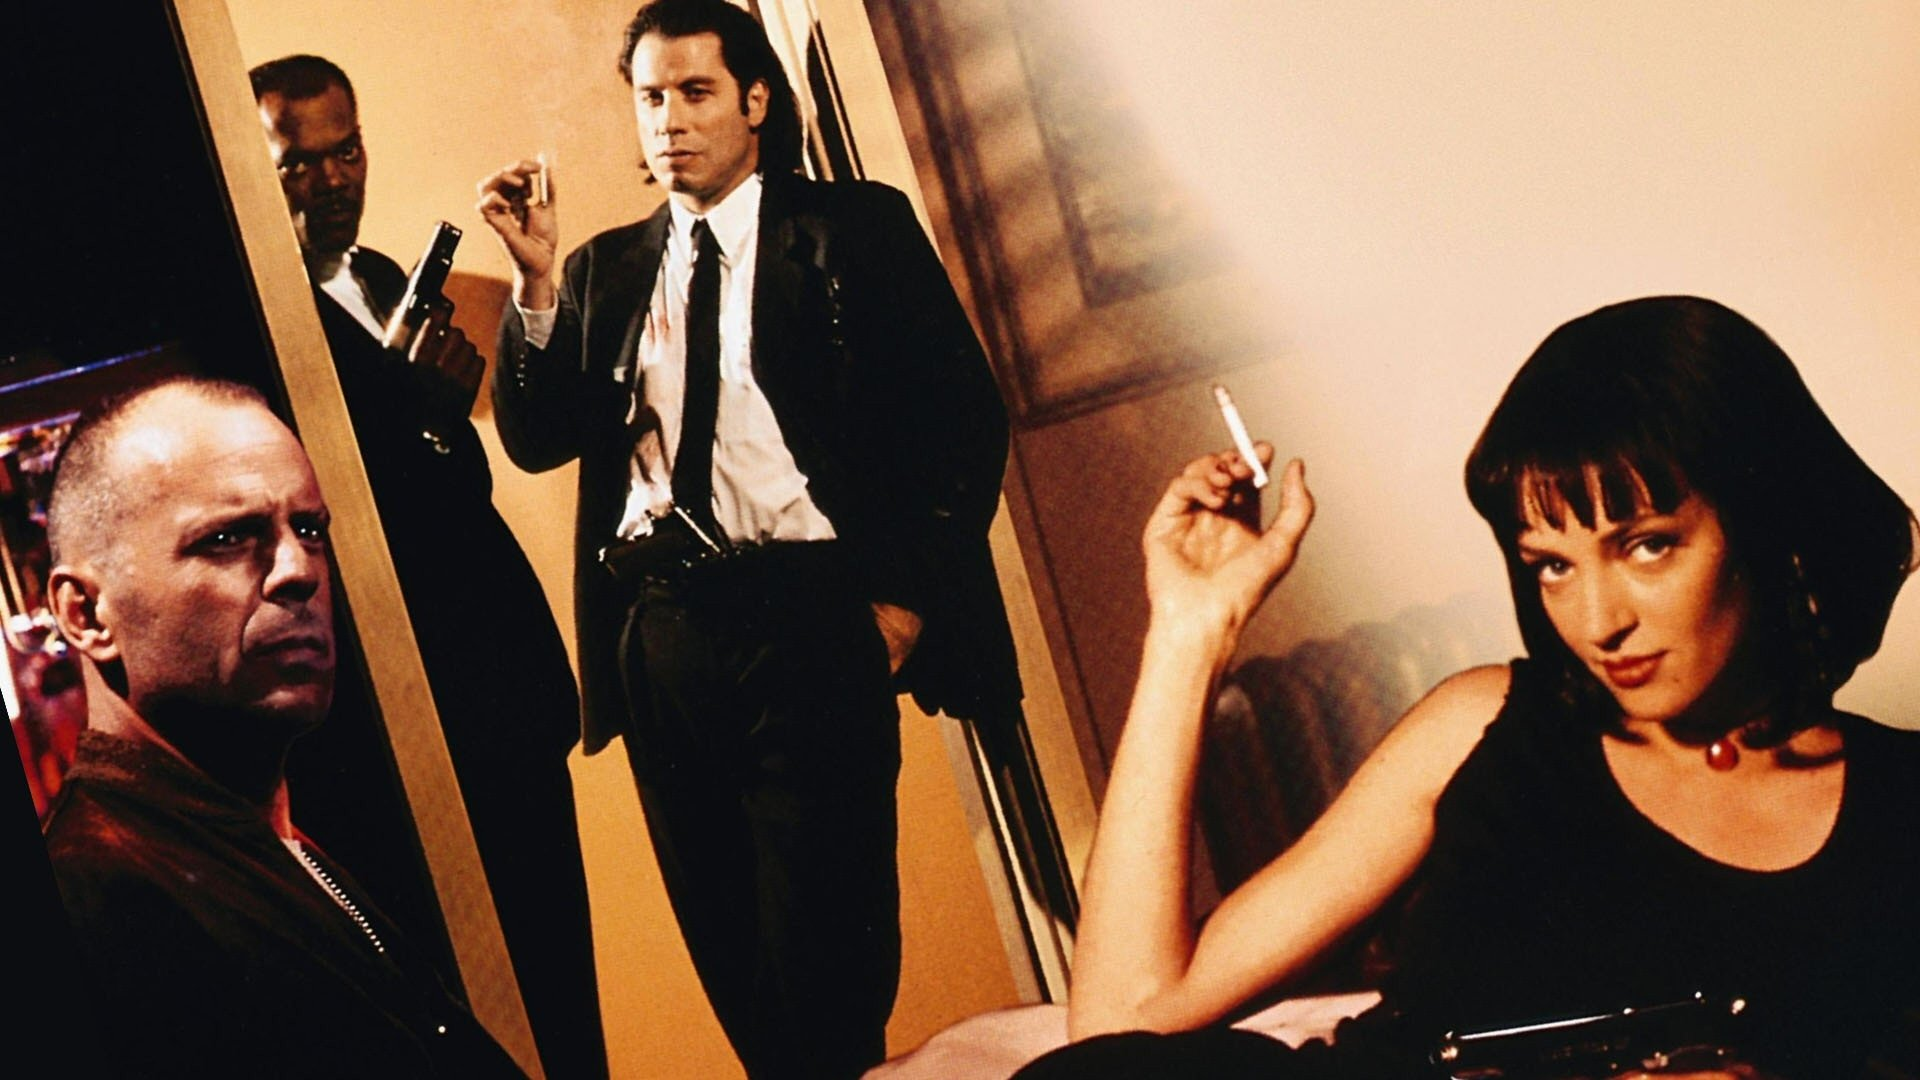 Pulp Fiction Wallpapers ID499674